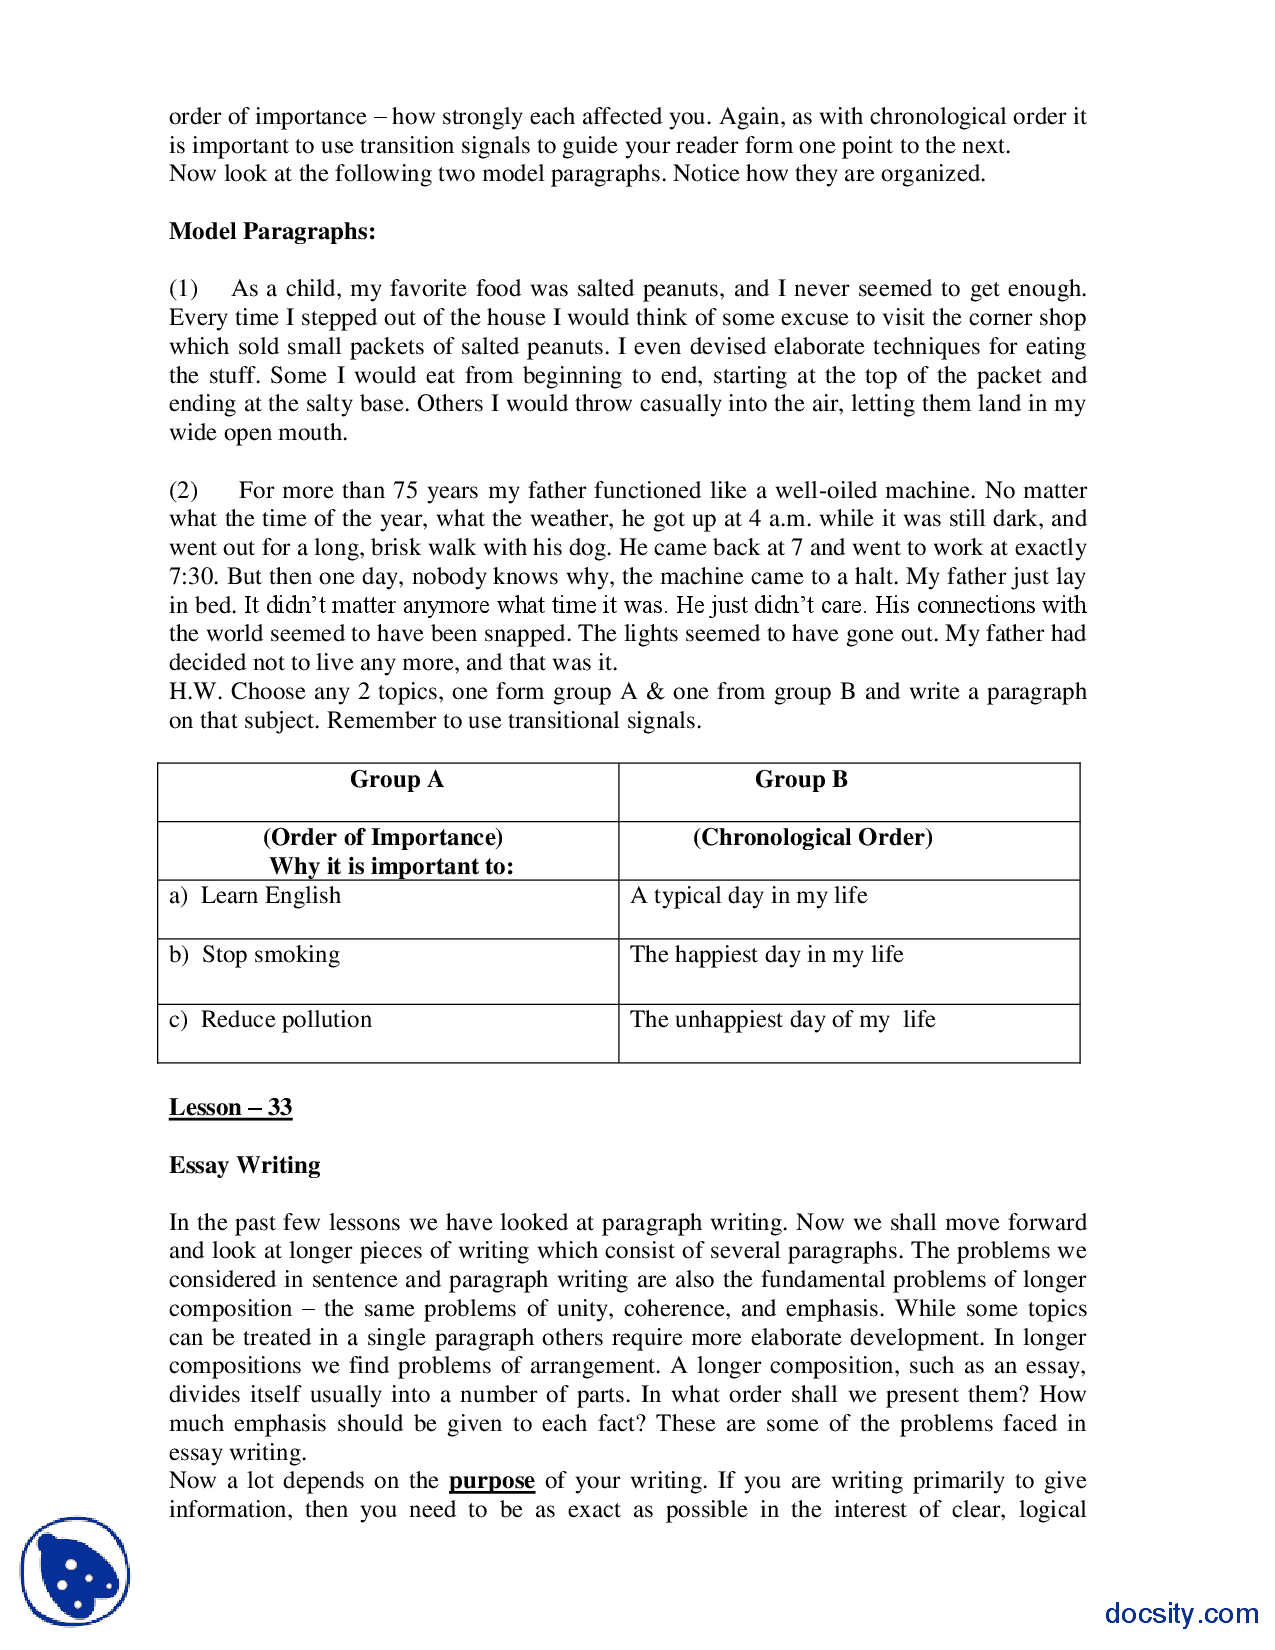 Part 21, Model Paragraphs-Business Communication And English